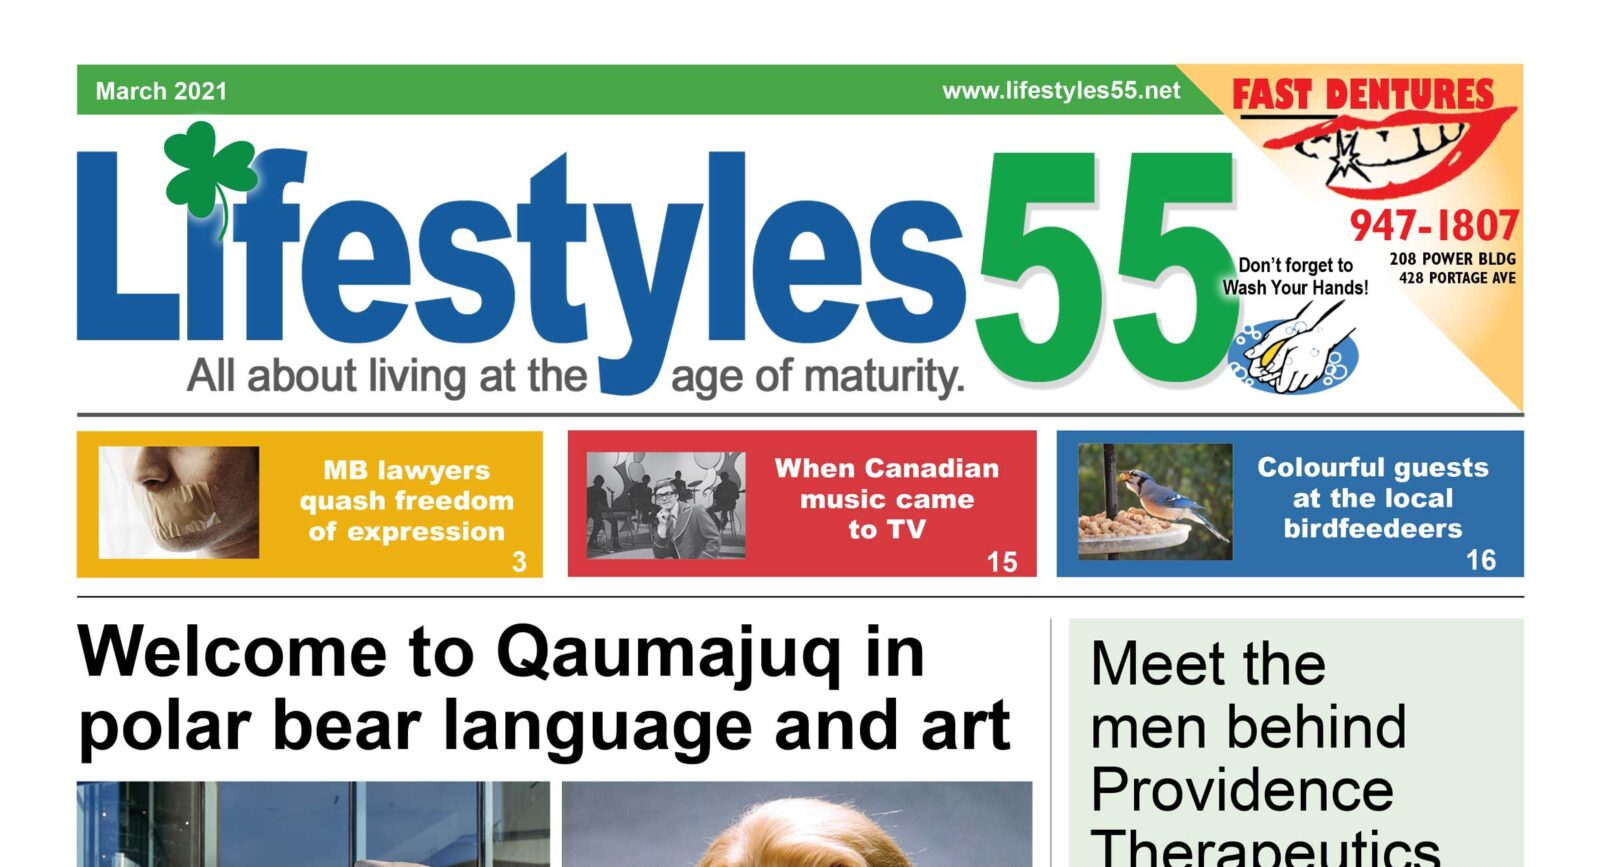 Lifestyles 55 March 2021